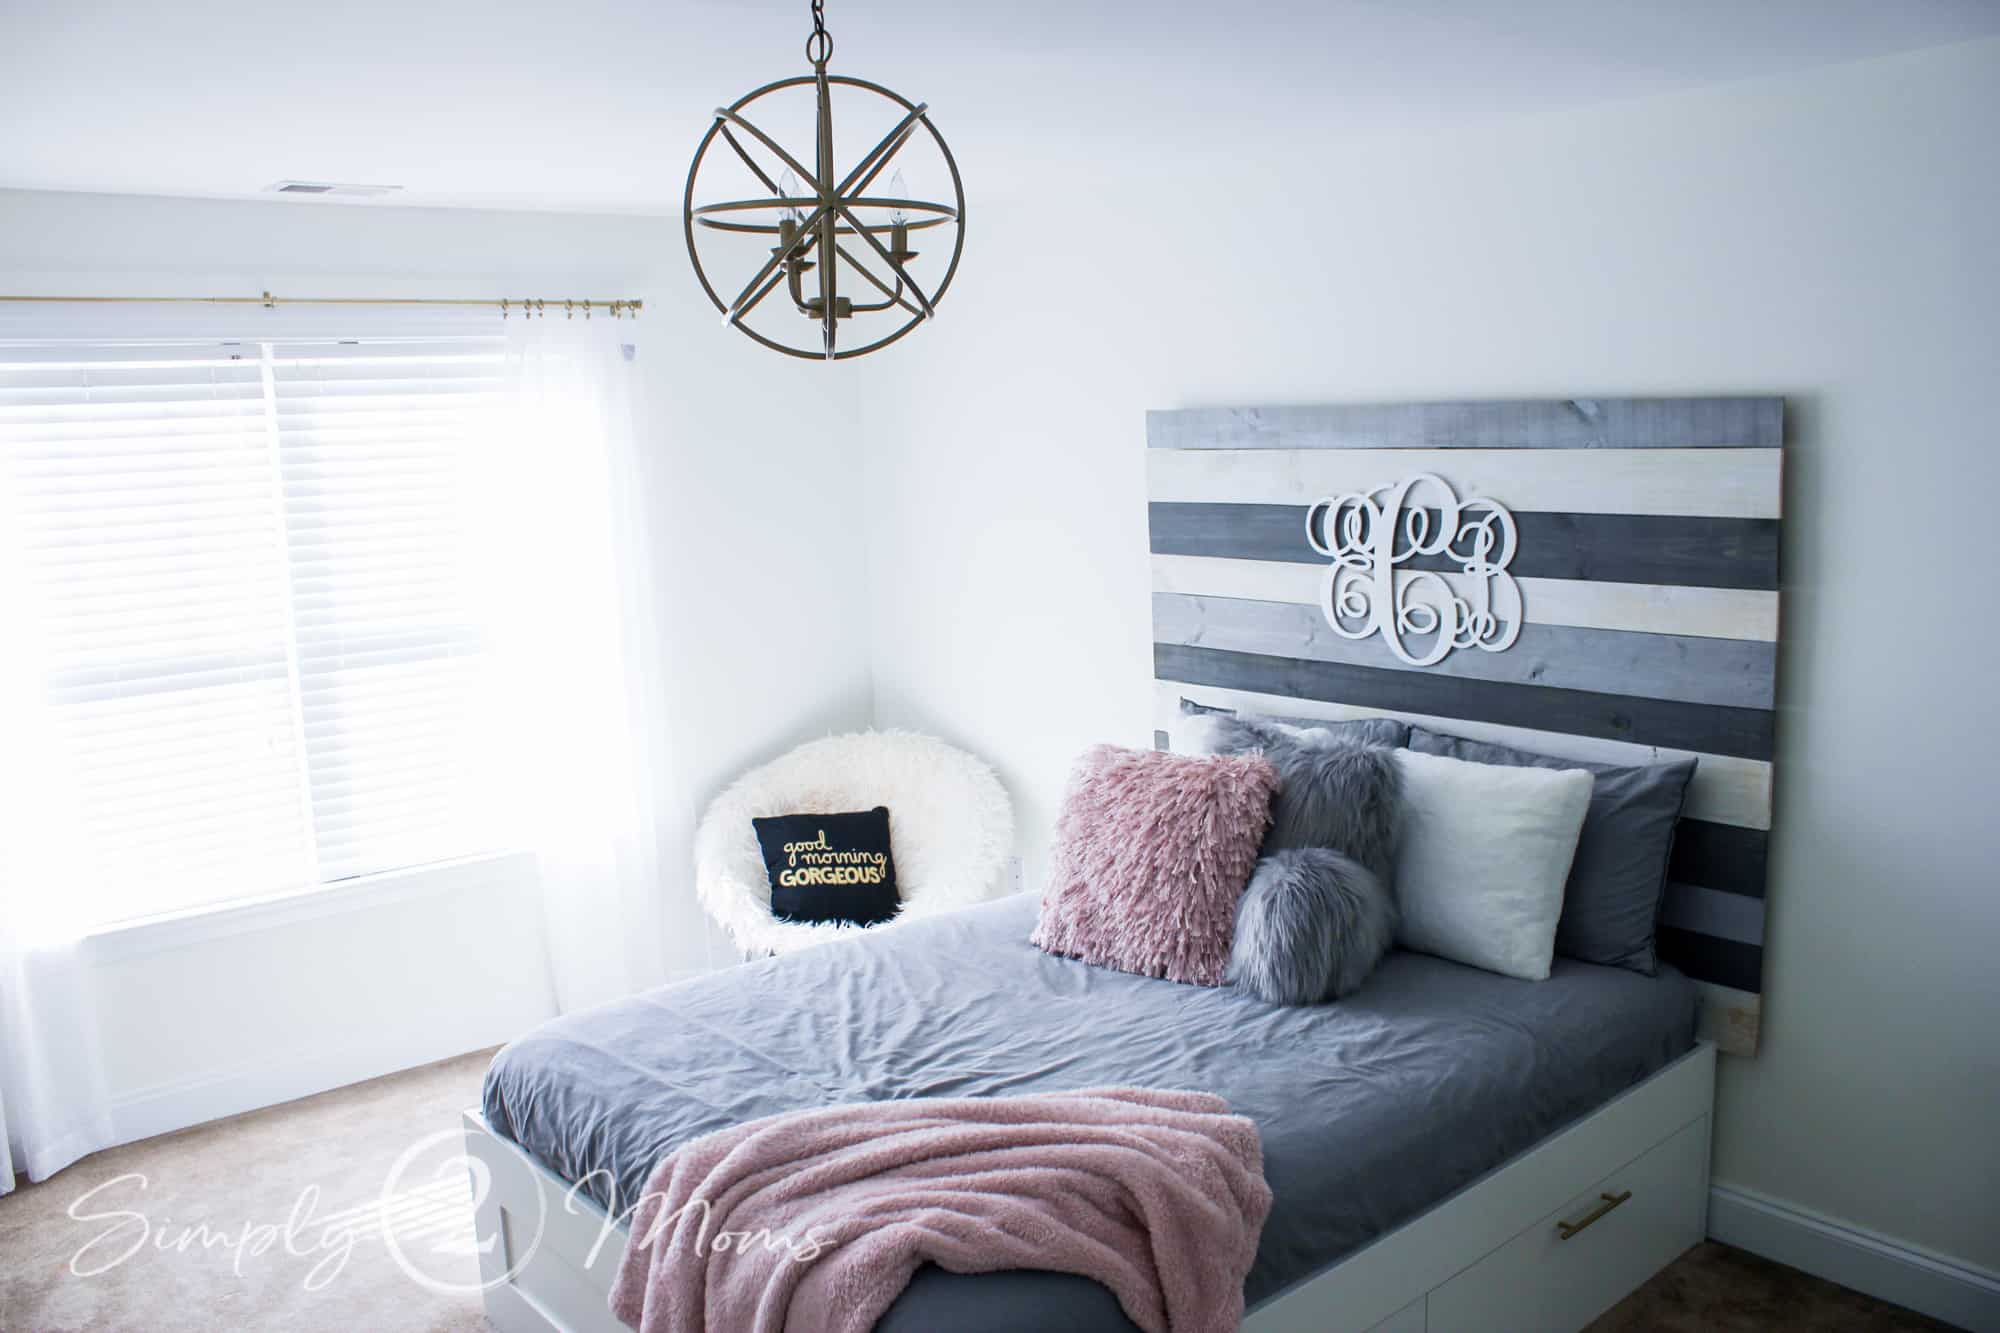 30 Beautiful DIY Pallet Headboard Ideas to Upgrade Your Room